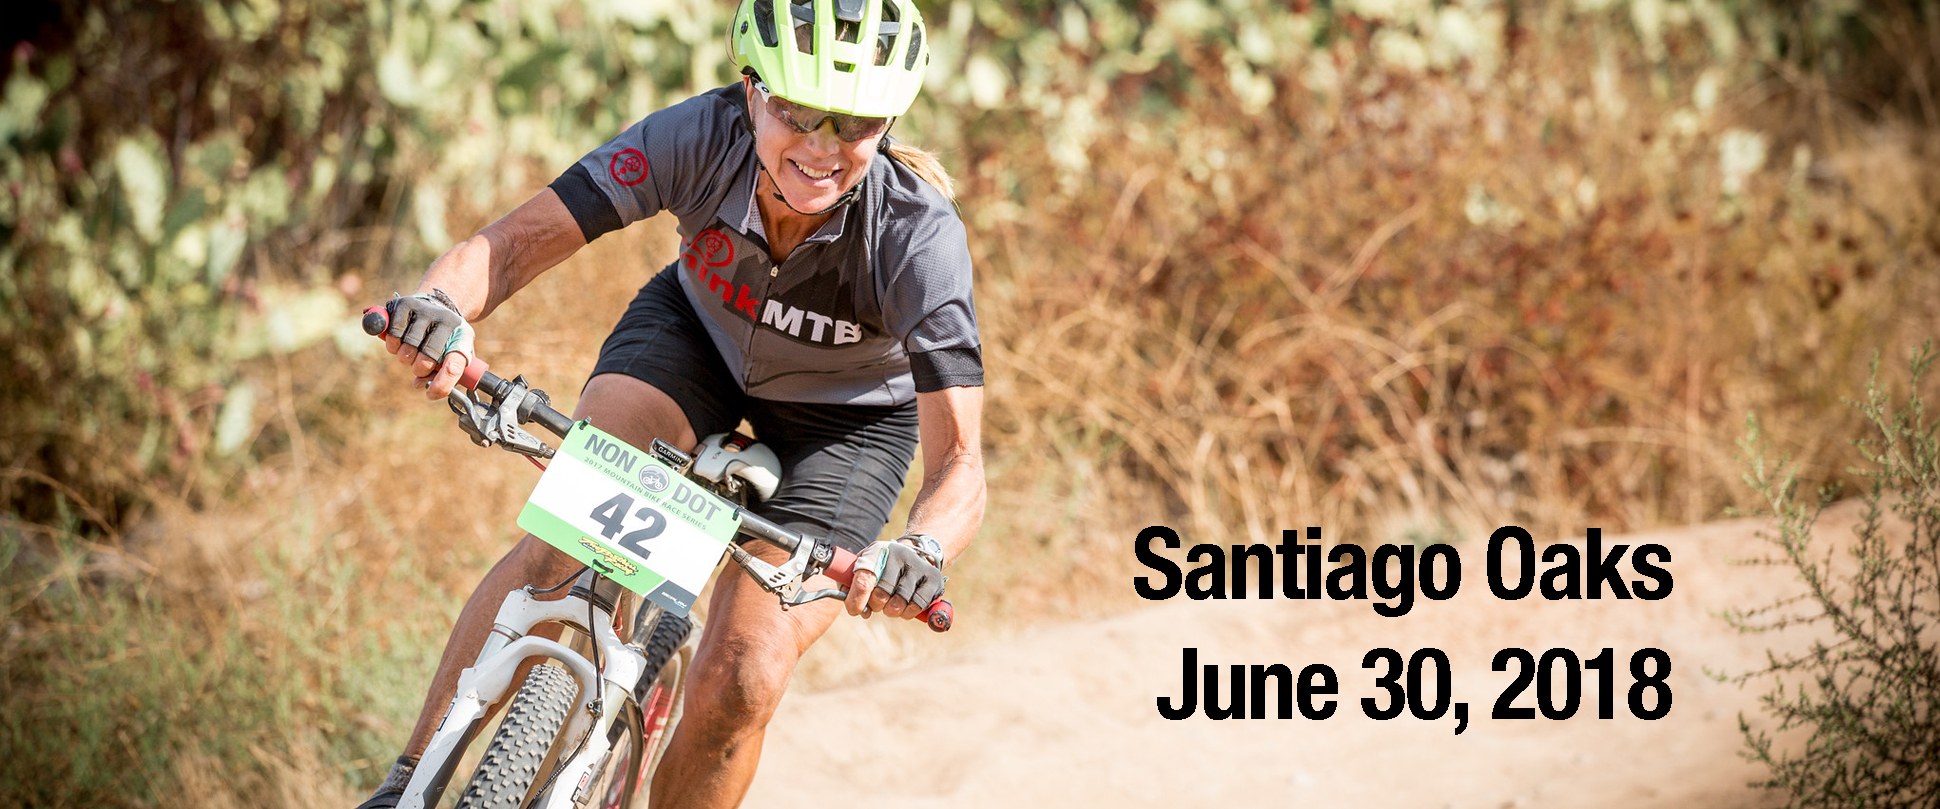 Santiago Oaks cross country mountain bike race